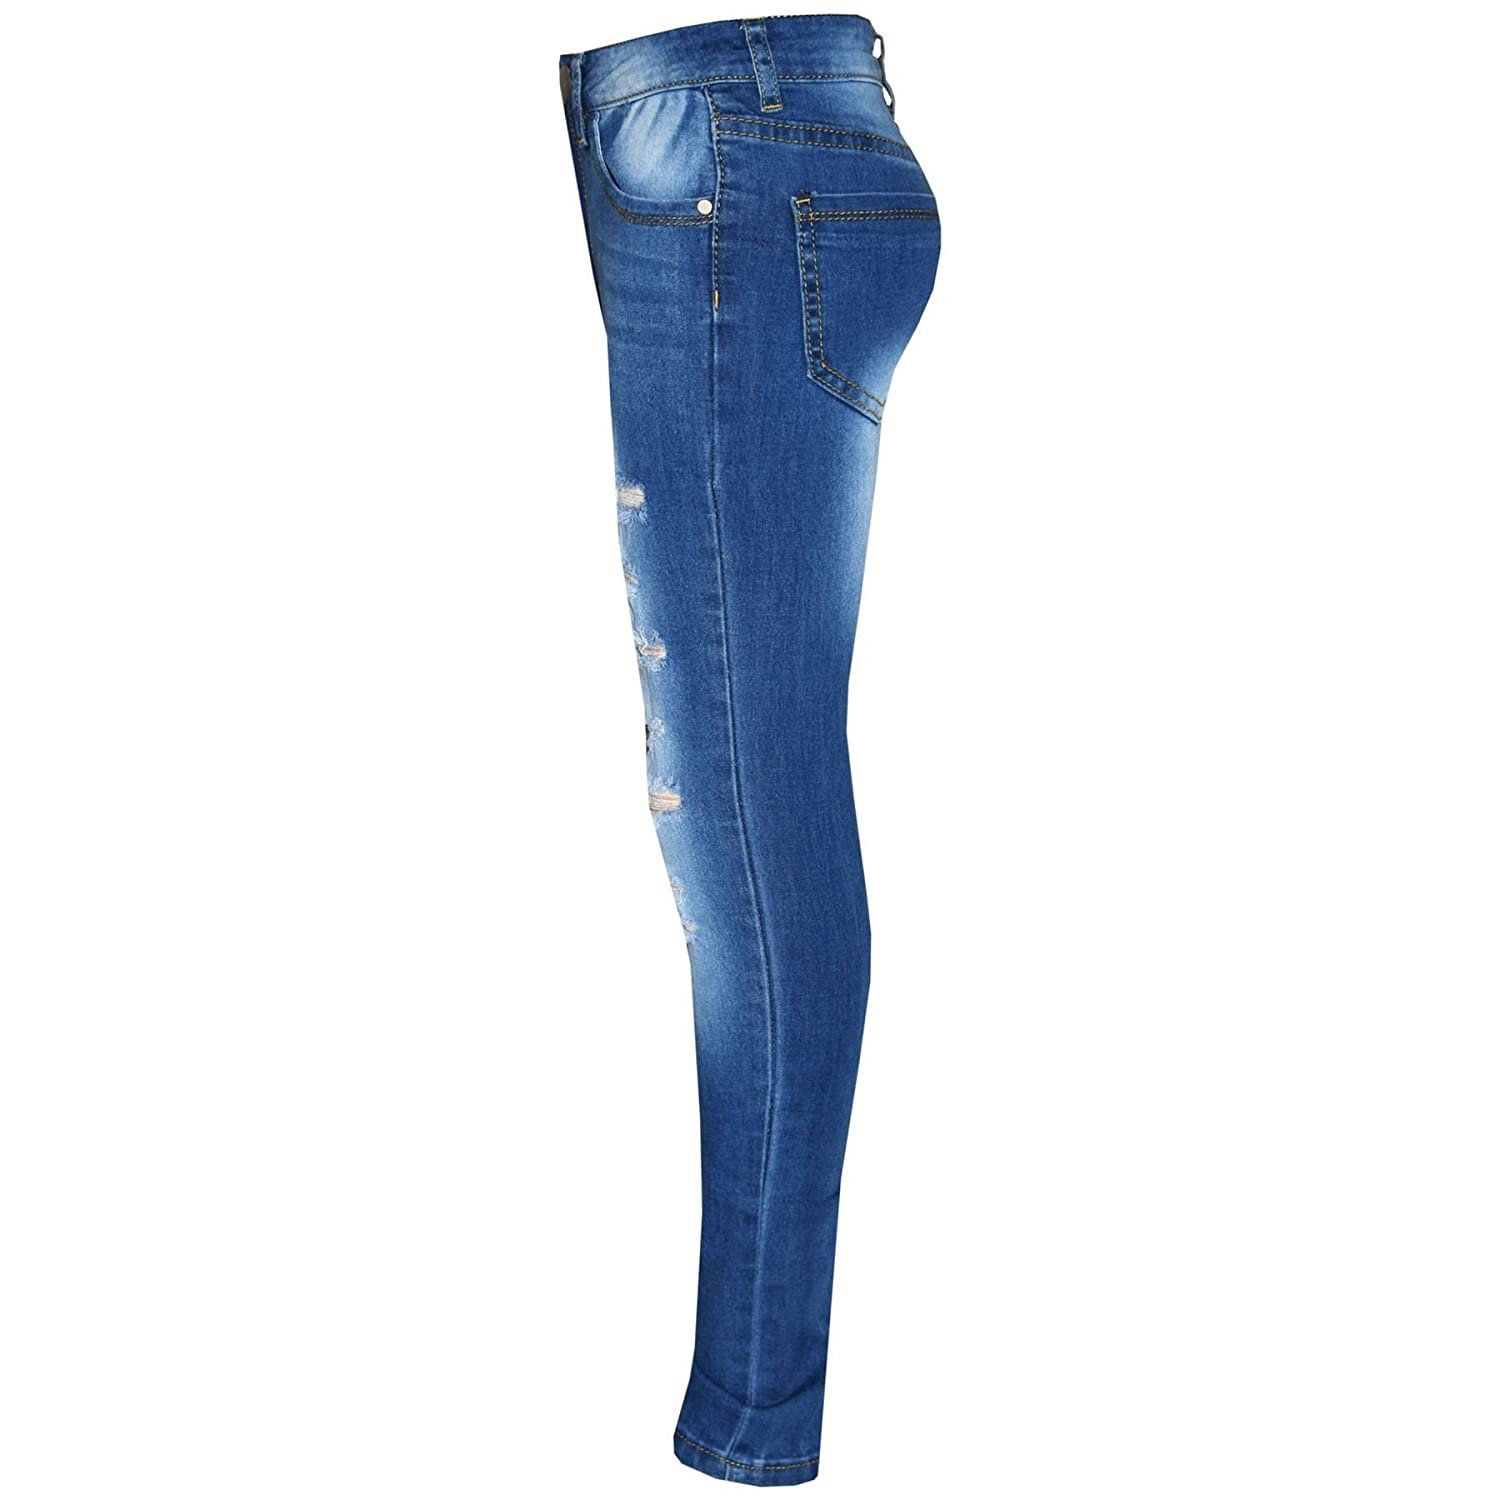 Kids Girls Skinny Jeans Denim Ripped Stretchy Pants Jeggings New Age 3-13 Years